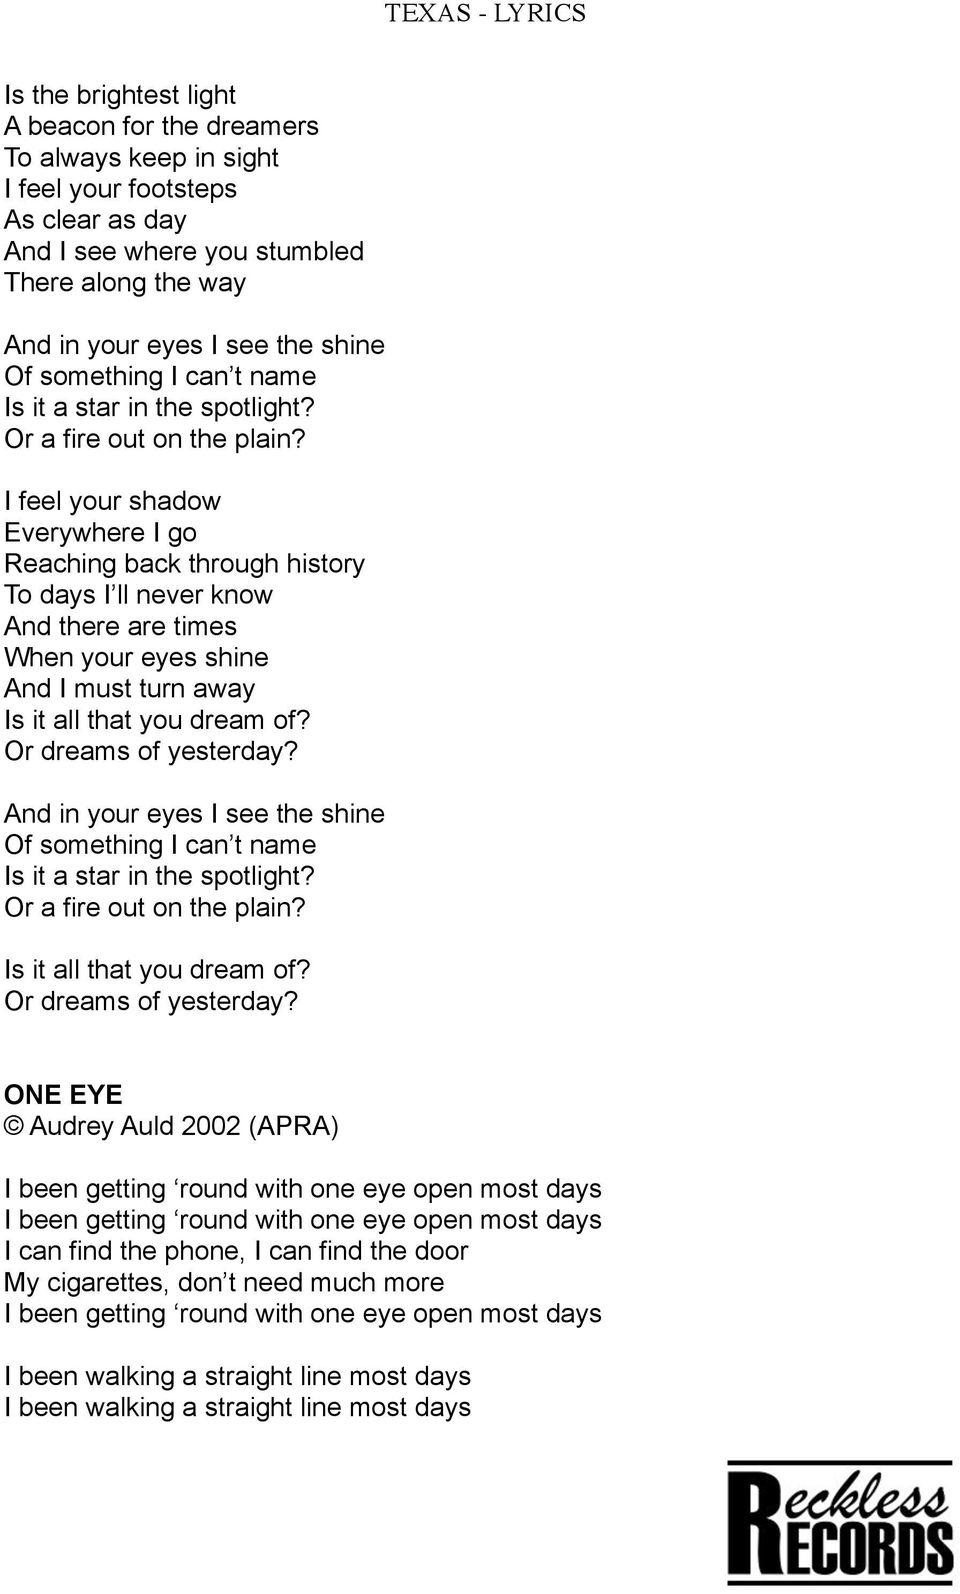 TEXAS - LYRICS  LOVE YOU LIKE THE EARTH Audrey Auld 2003